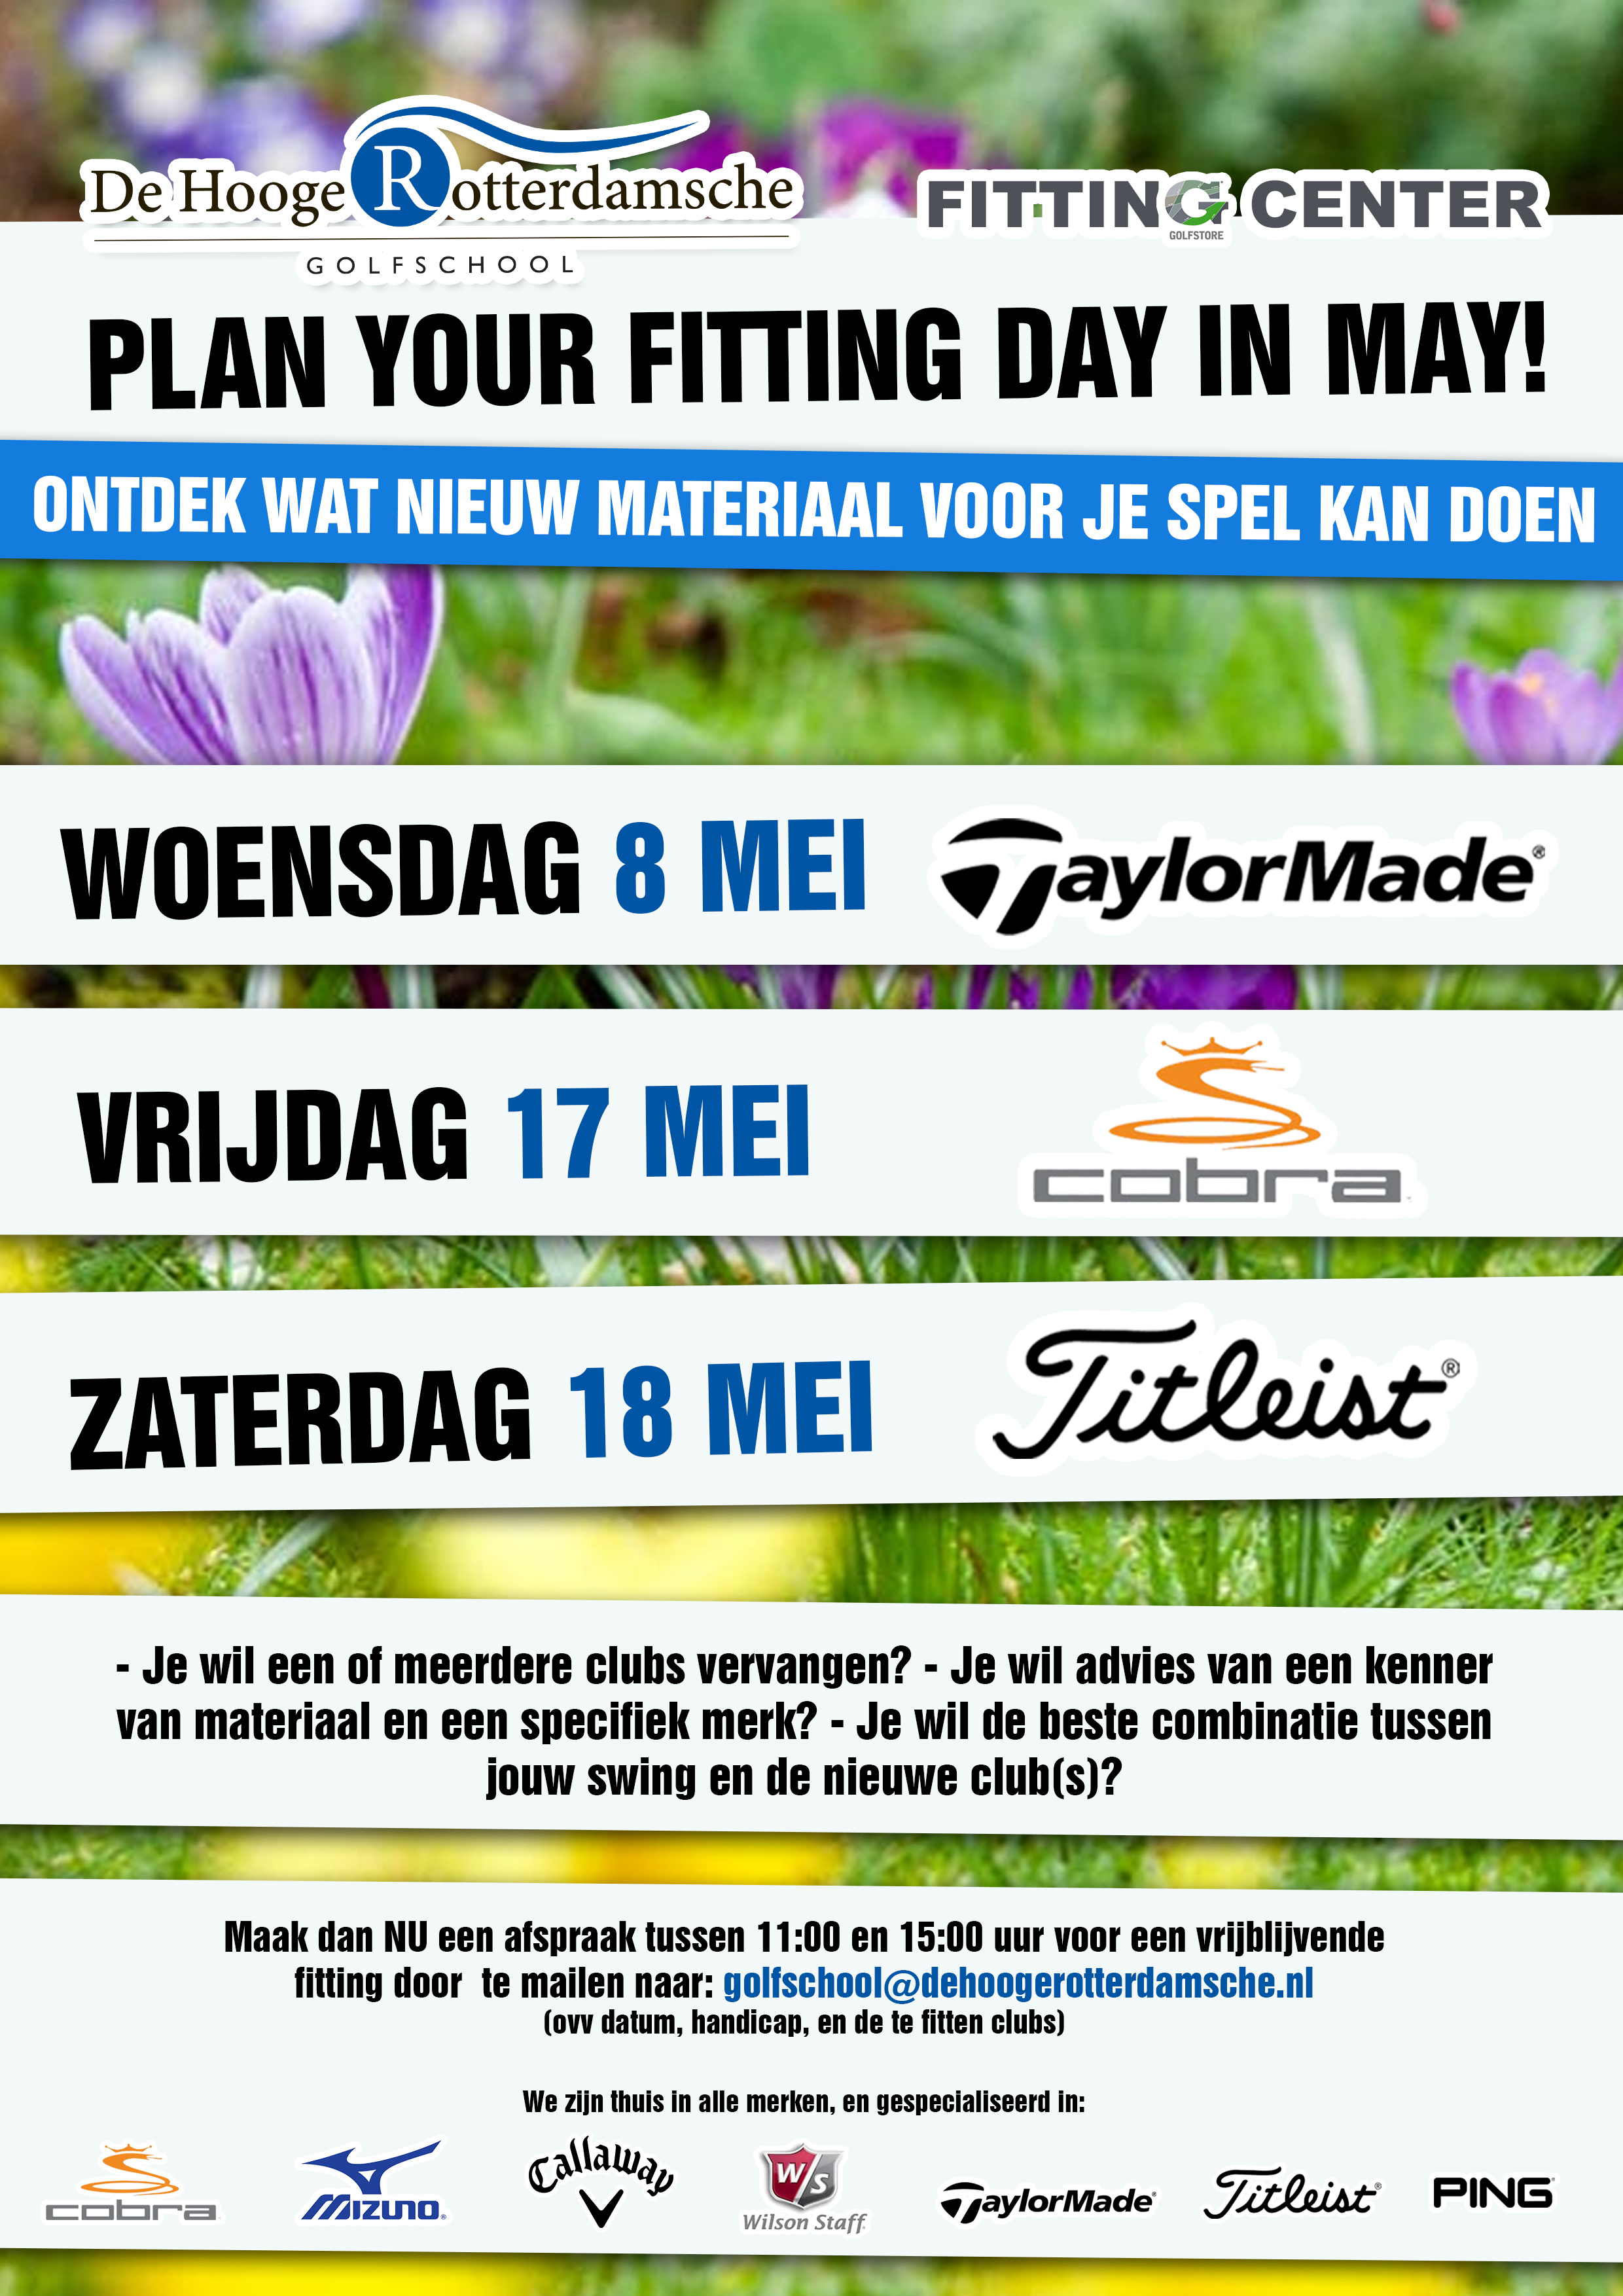 Plan your Fitting day in May